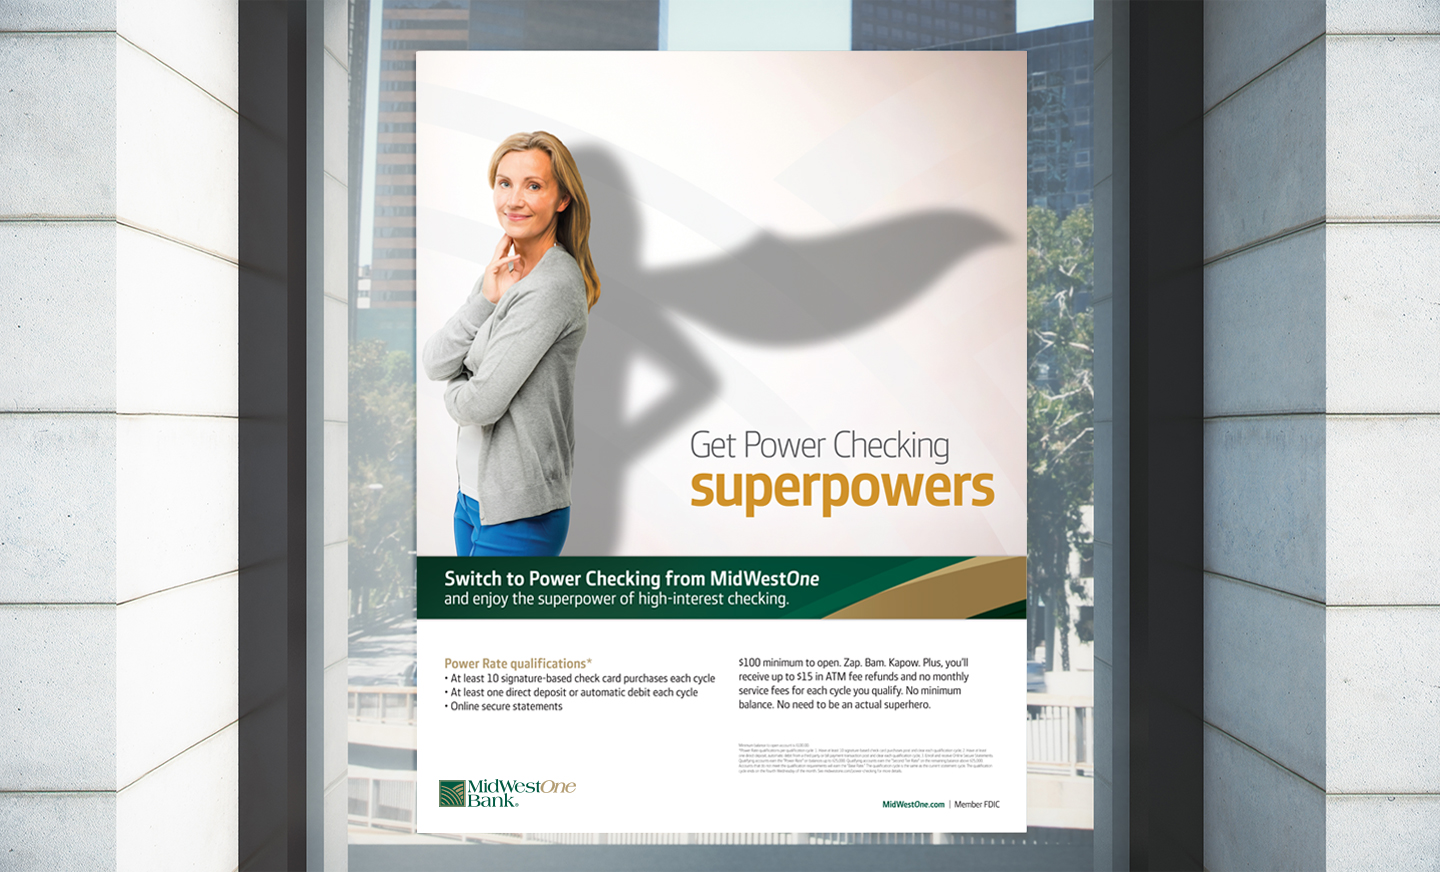 MidWestOne Power Checking campaign by MindFire